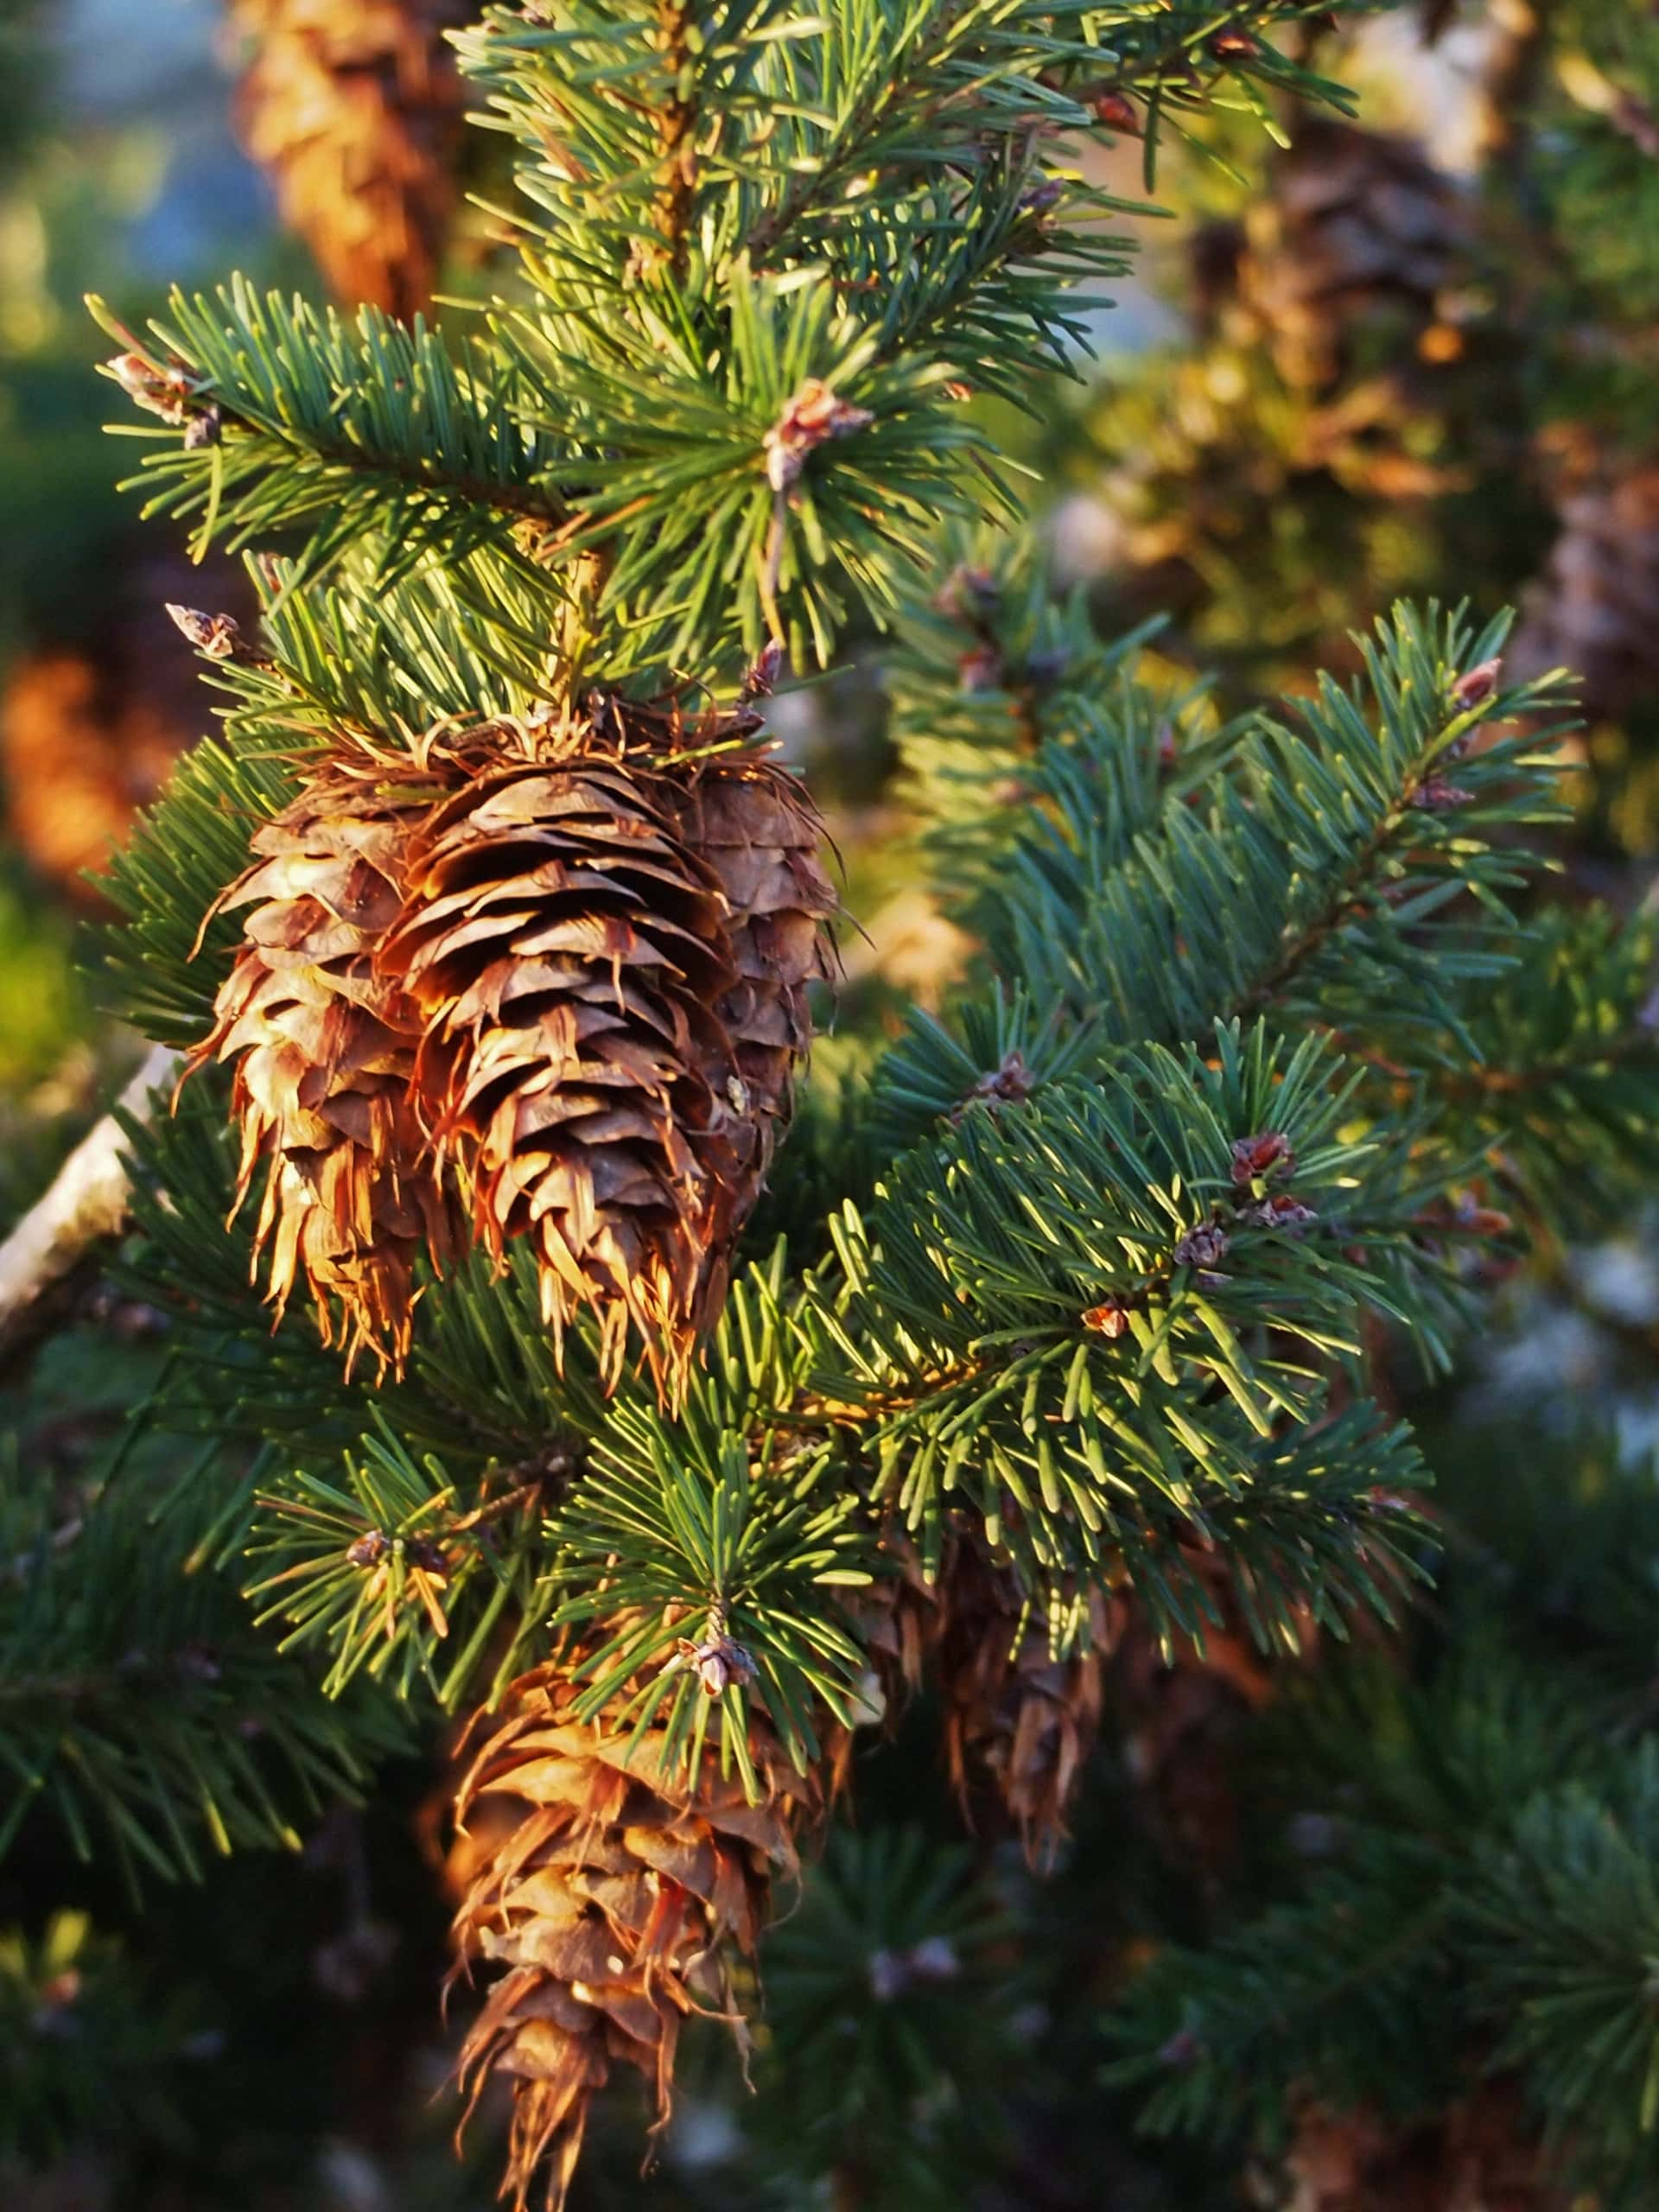 the cones of a Douglas fir tree hanging in green